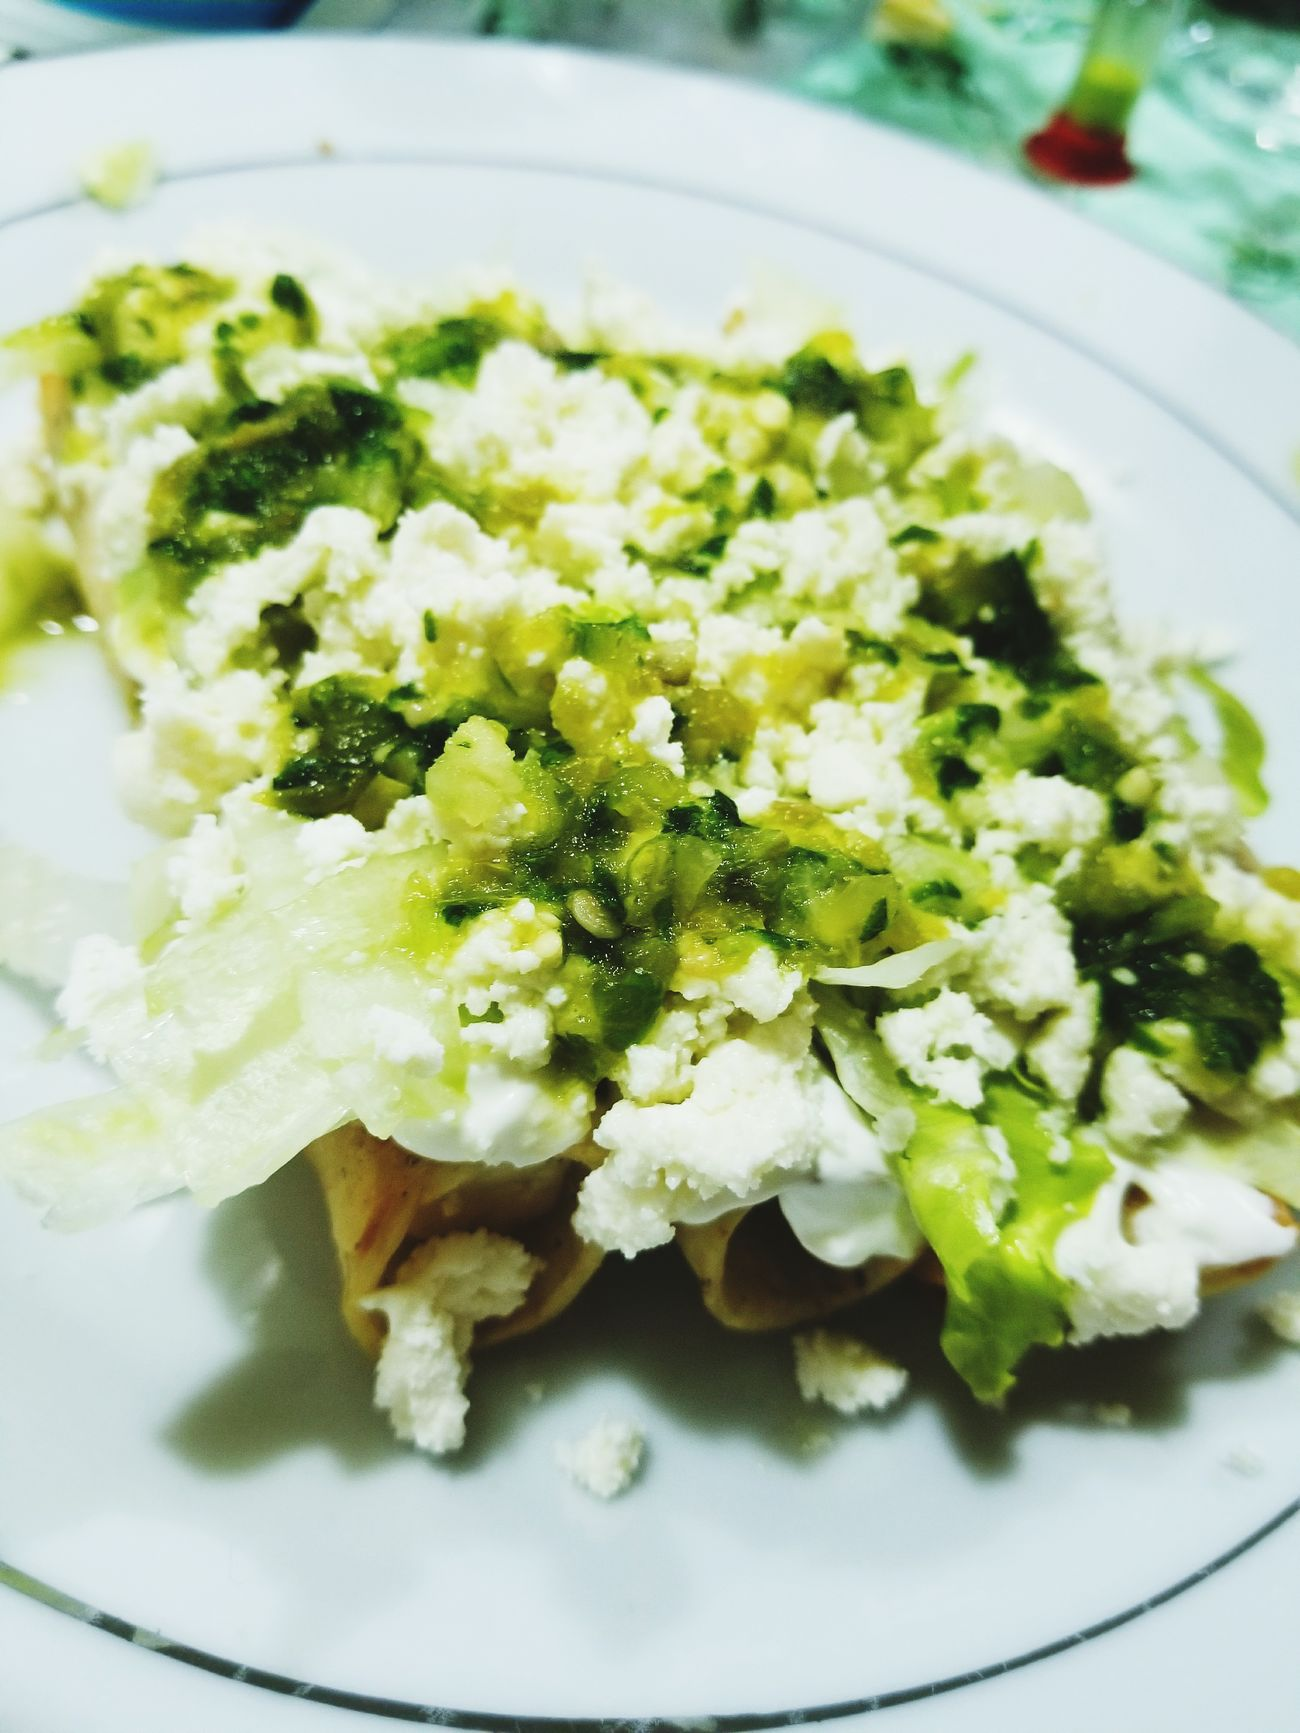 Tacos Dorados 👅👅 MexixanFood Mexican Style Mexican Culture Food And Drink Mexican Traditions Mexicanphotographer